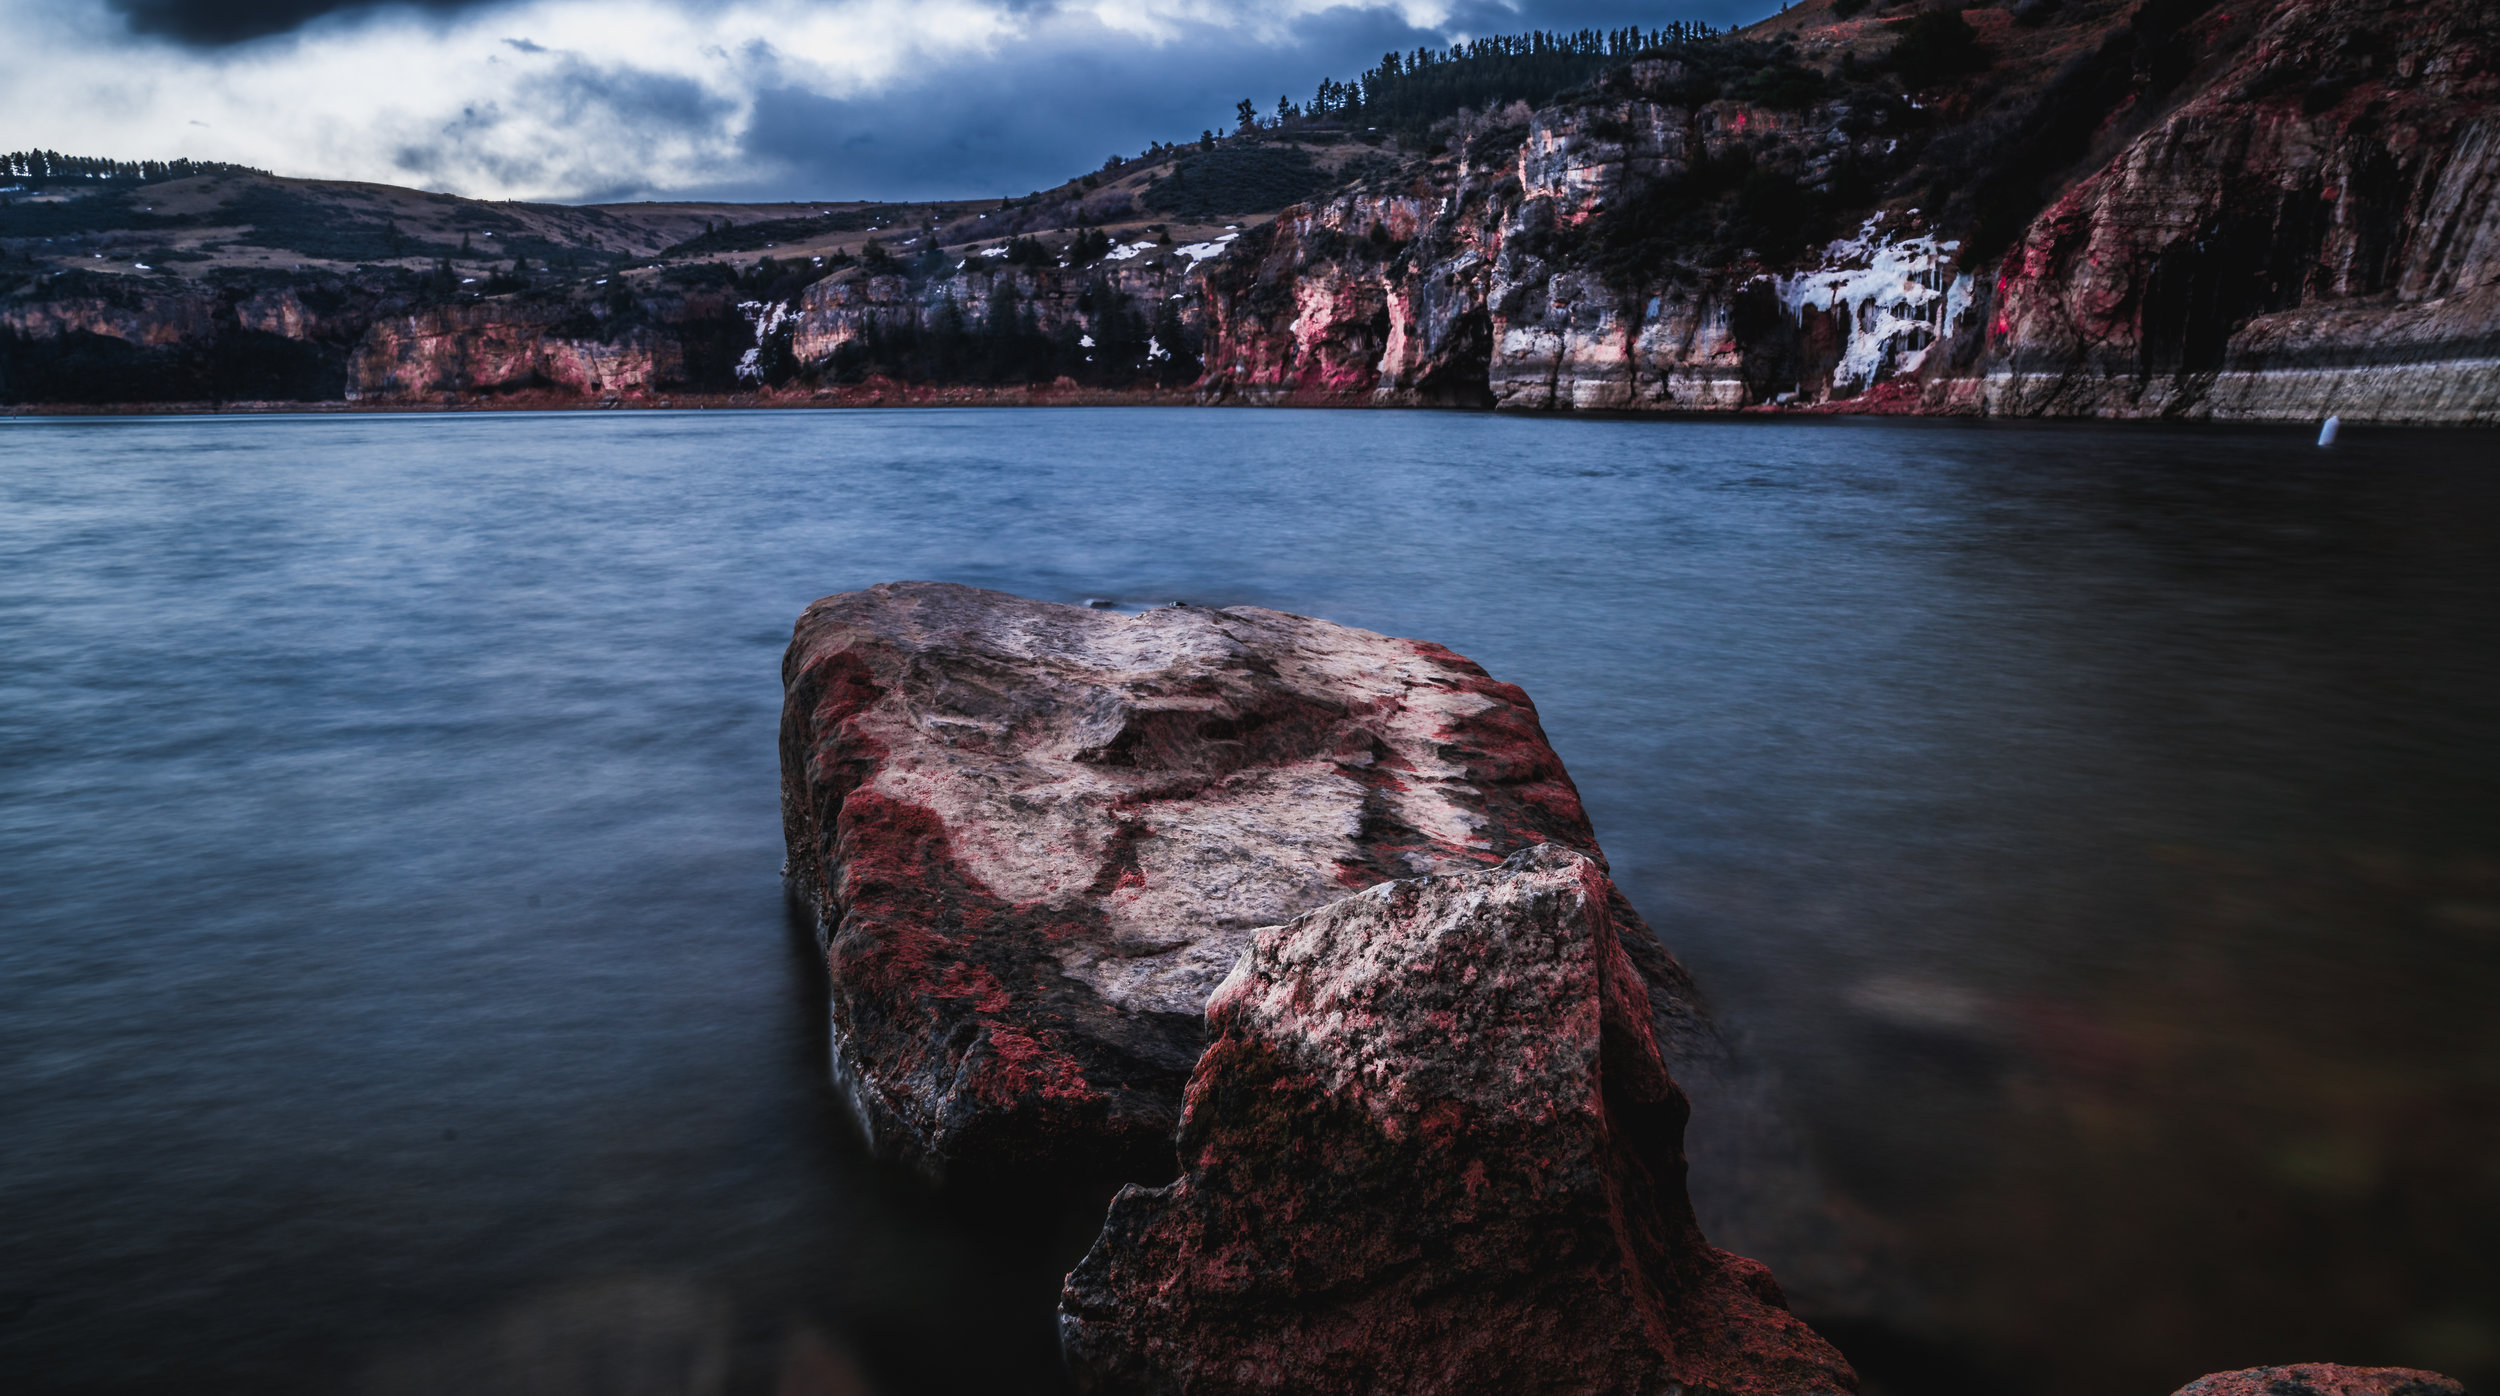 An isolated rock protrudes from the frigid waters of the Bighorn Canyon